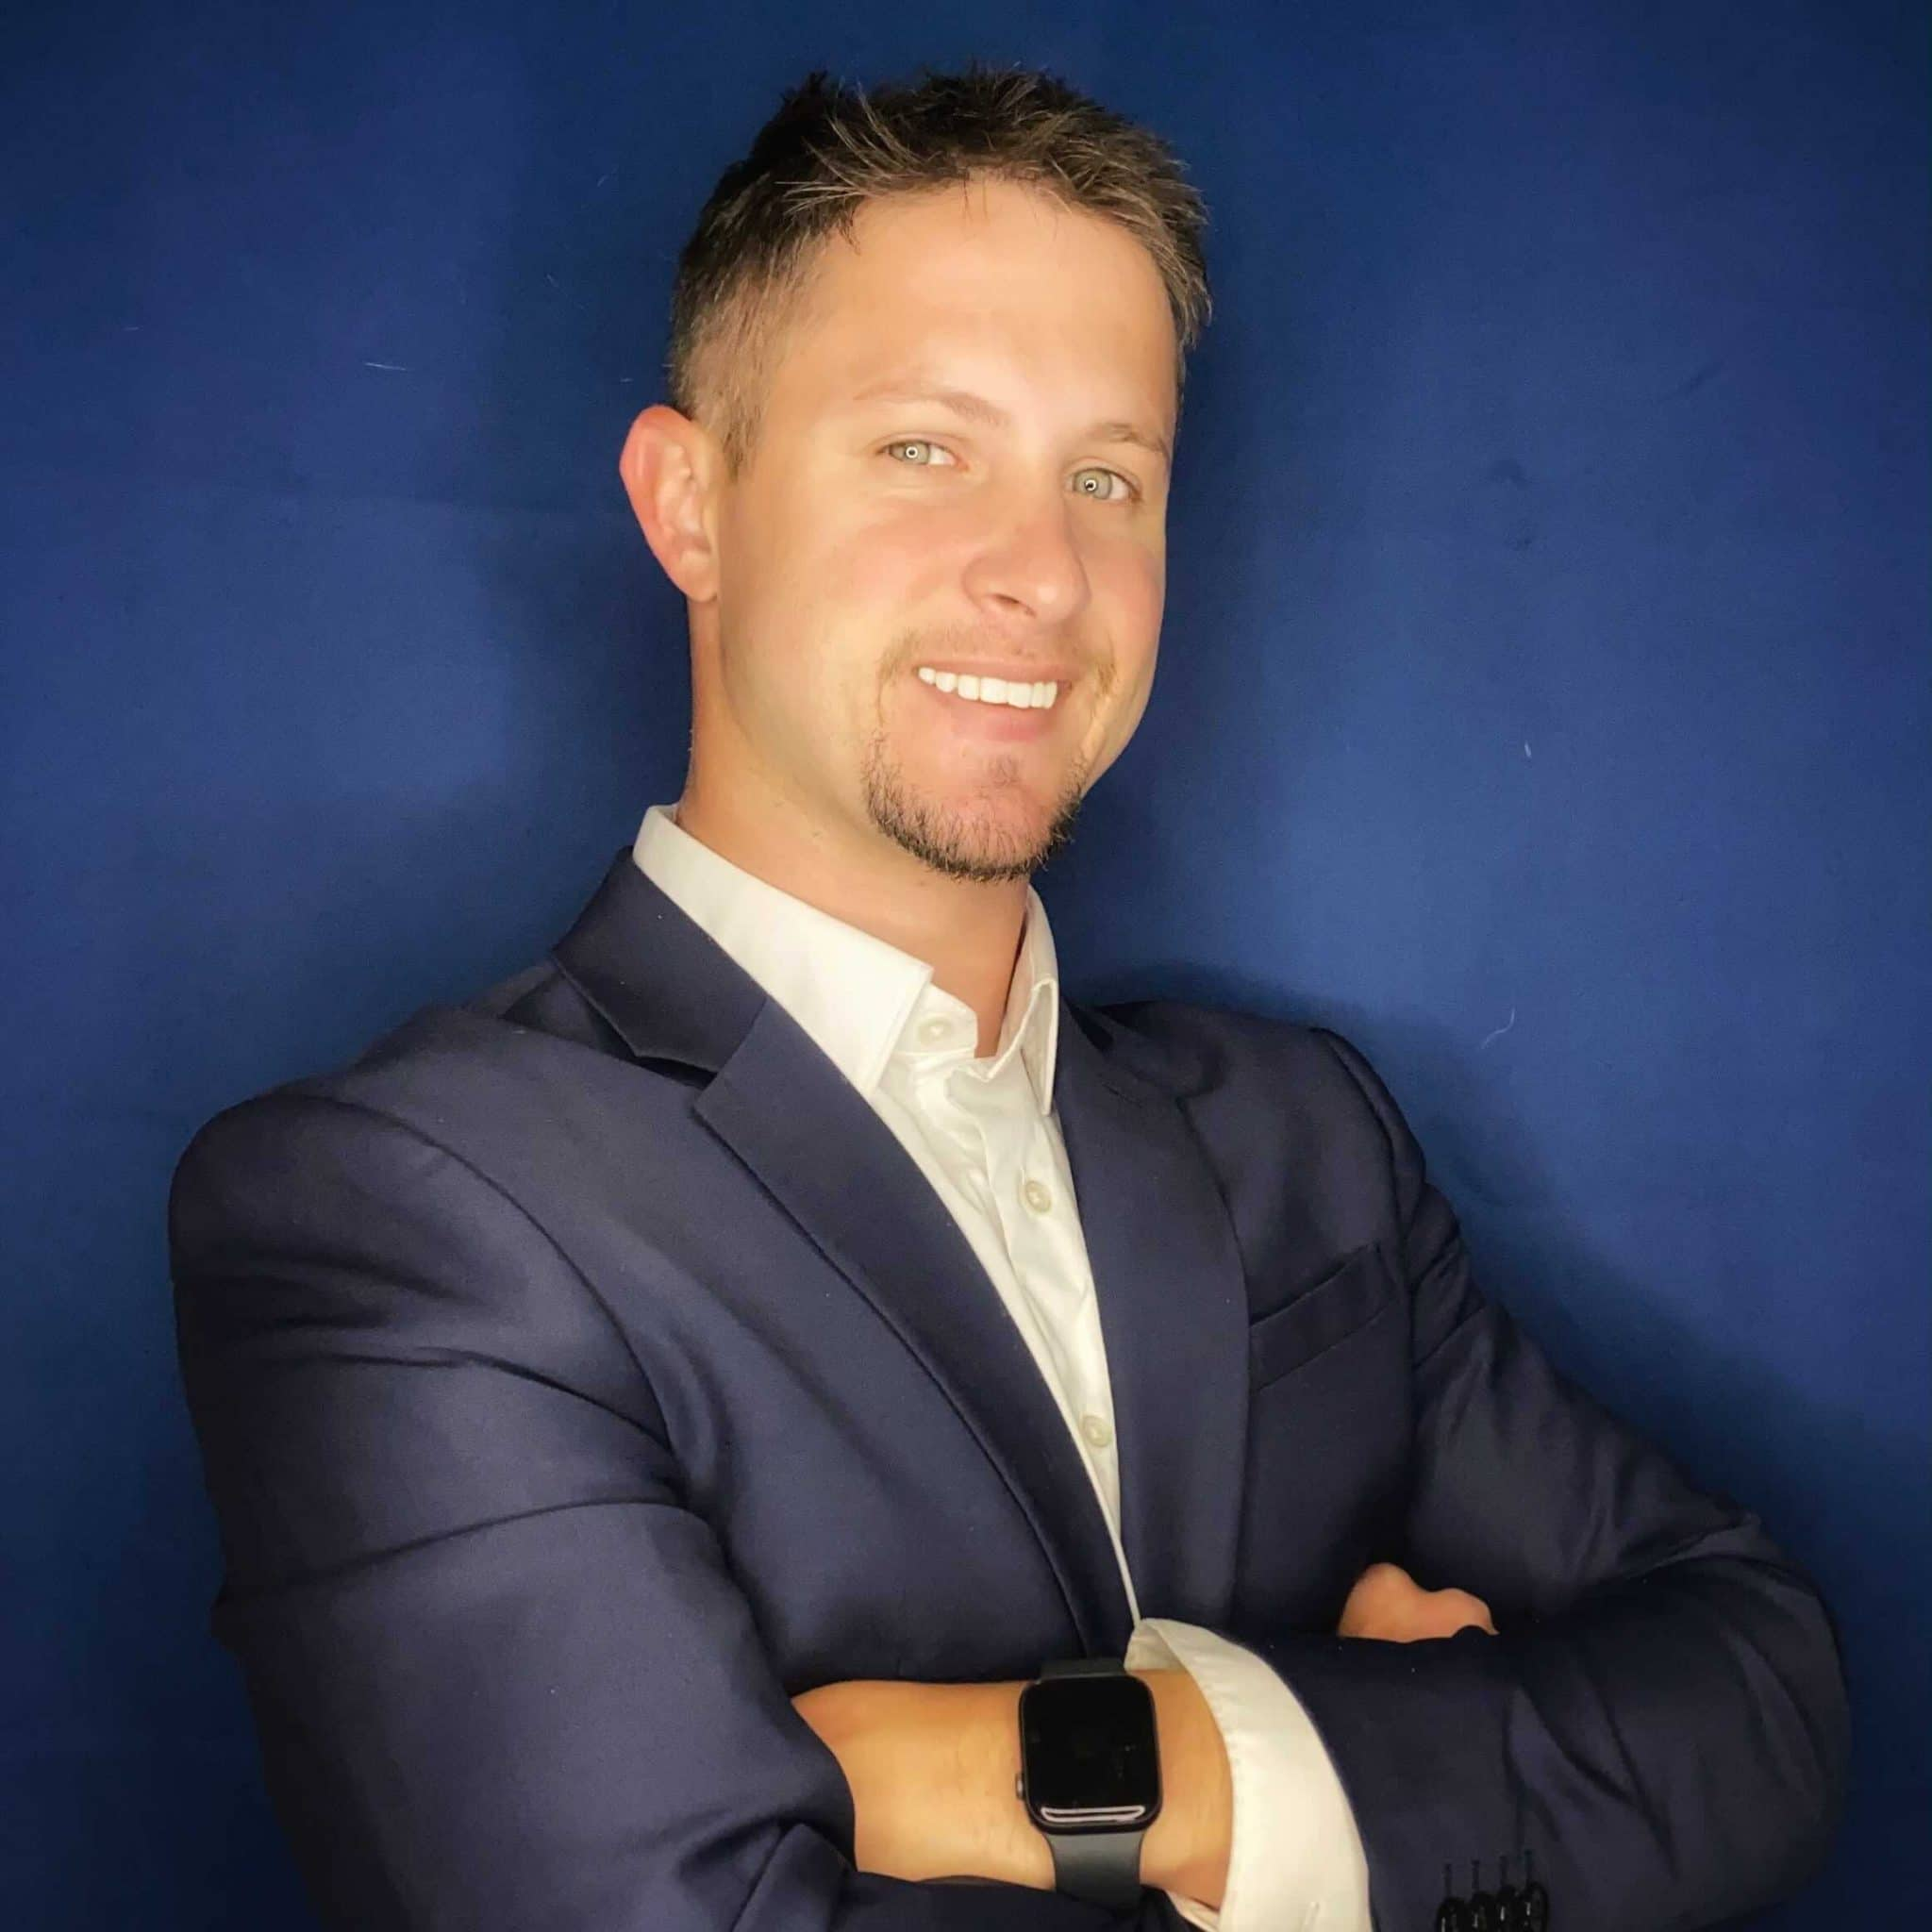 Braedon Kruse CEO at Sooner Marketing Solutions